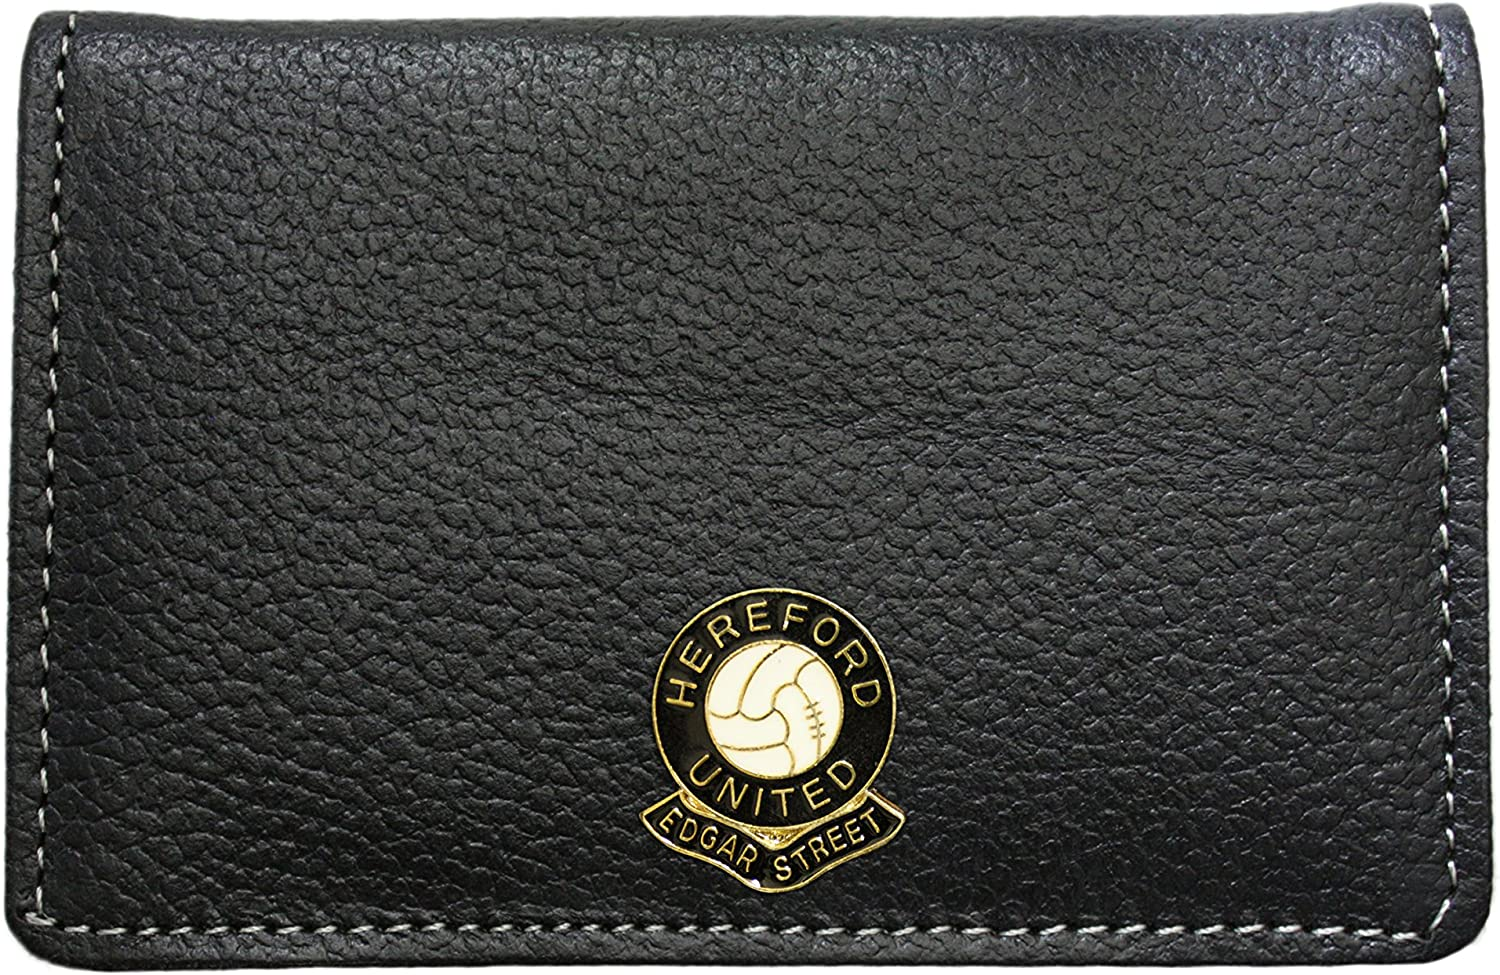 Hereford United football club leather card holder wallet